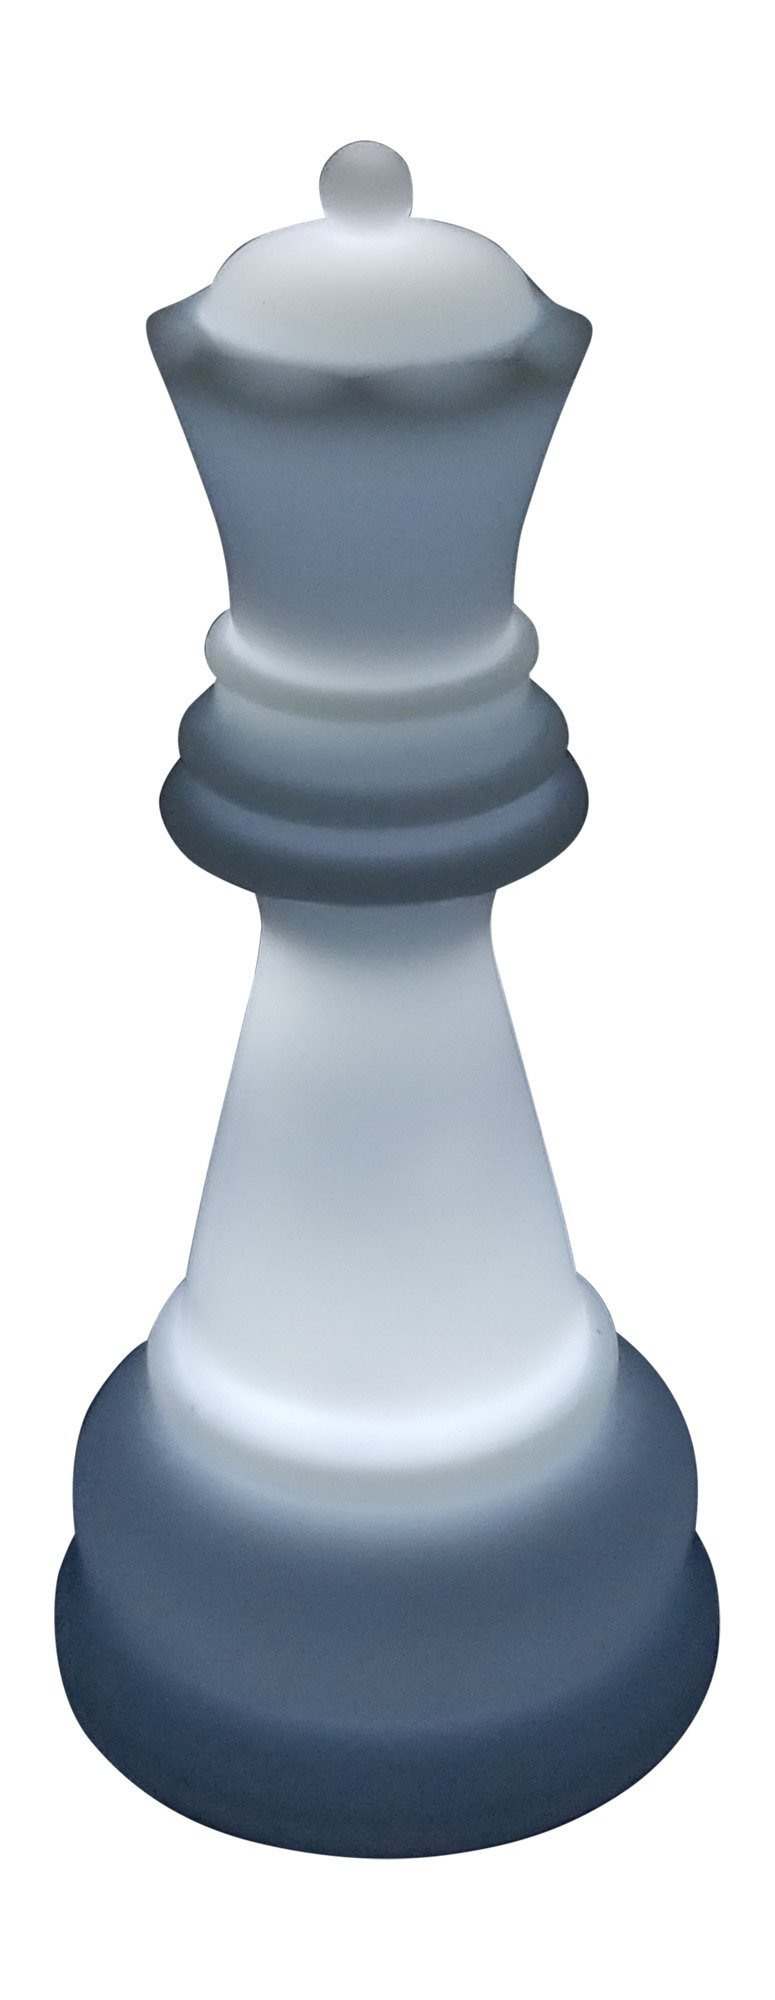 MegaChess 22 Inch Perfect Queen Light-Up Giant Chess Piece - White |  | MegaChess.com